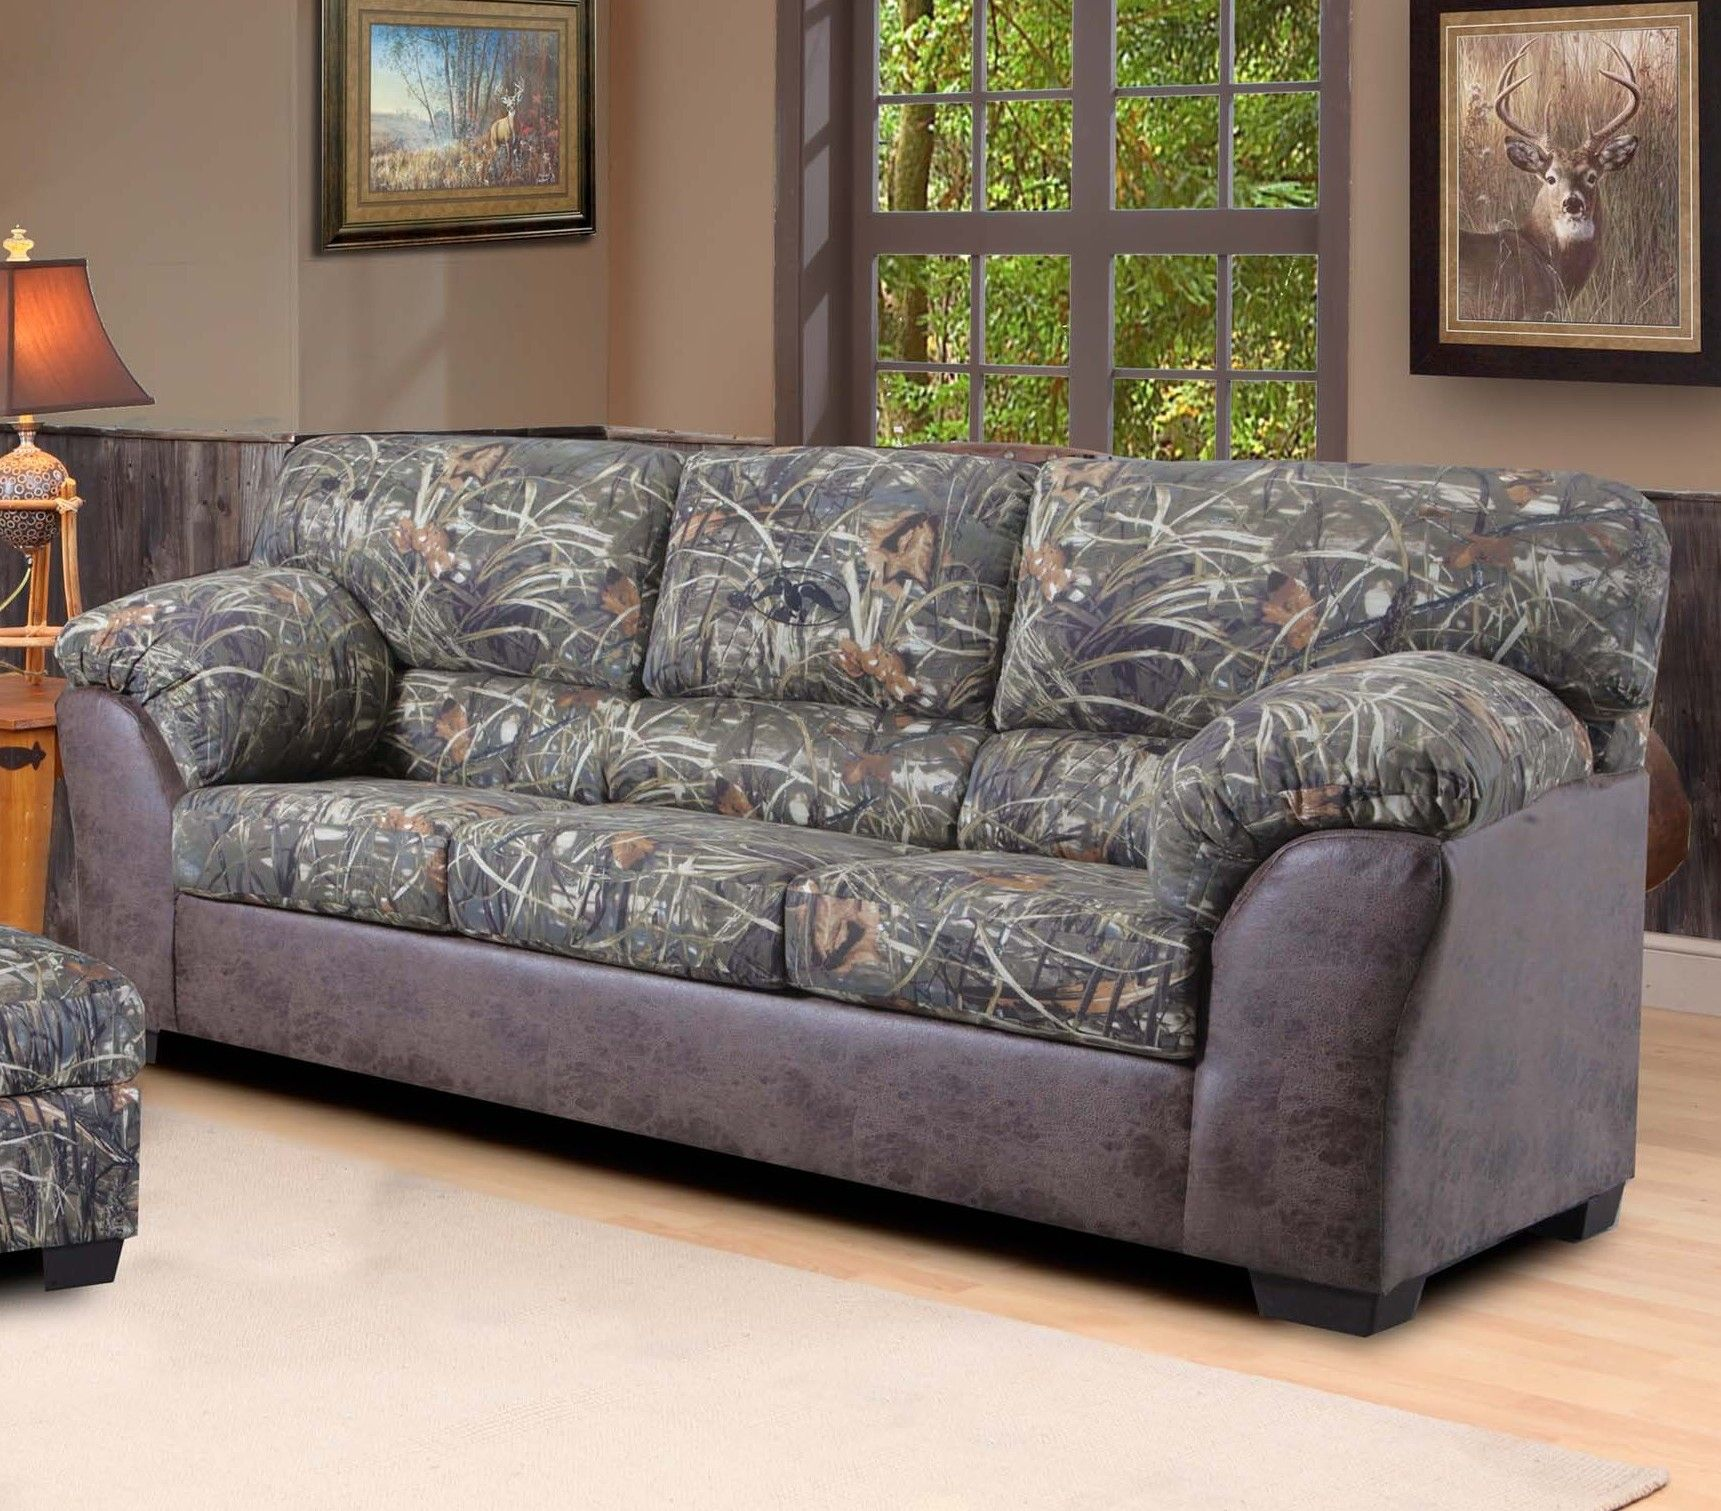 camouflage hunting loveseat piece camo full motion with furniture pictures mossy slipcovers of sofa oak living set reclining attractive cover inspirations recliner sofas w size for impressive sectional contemporary